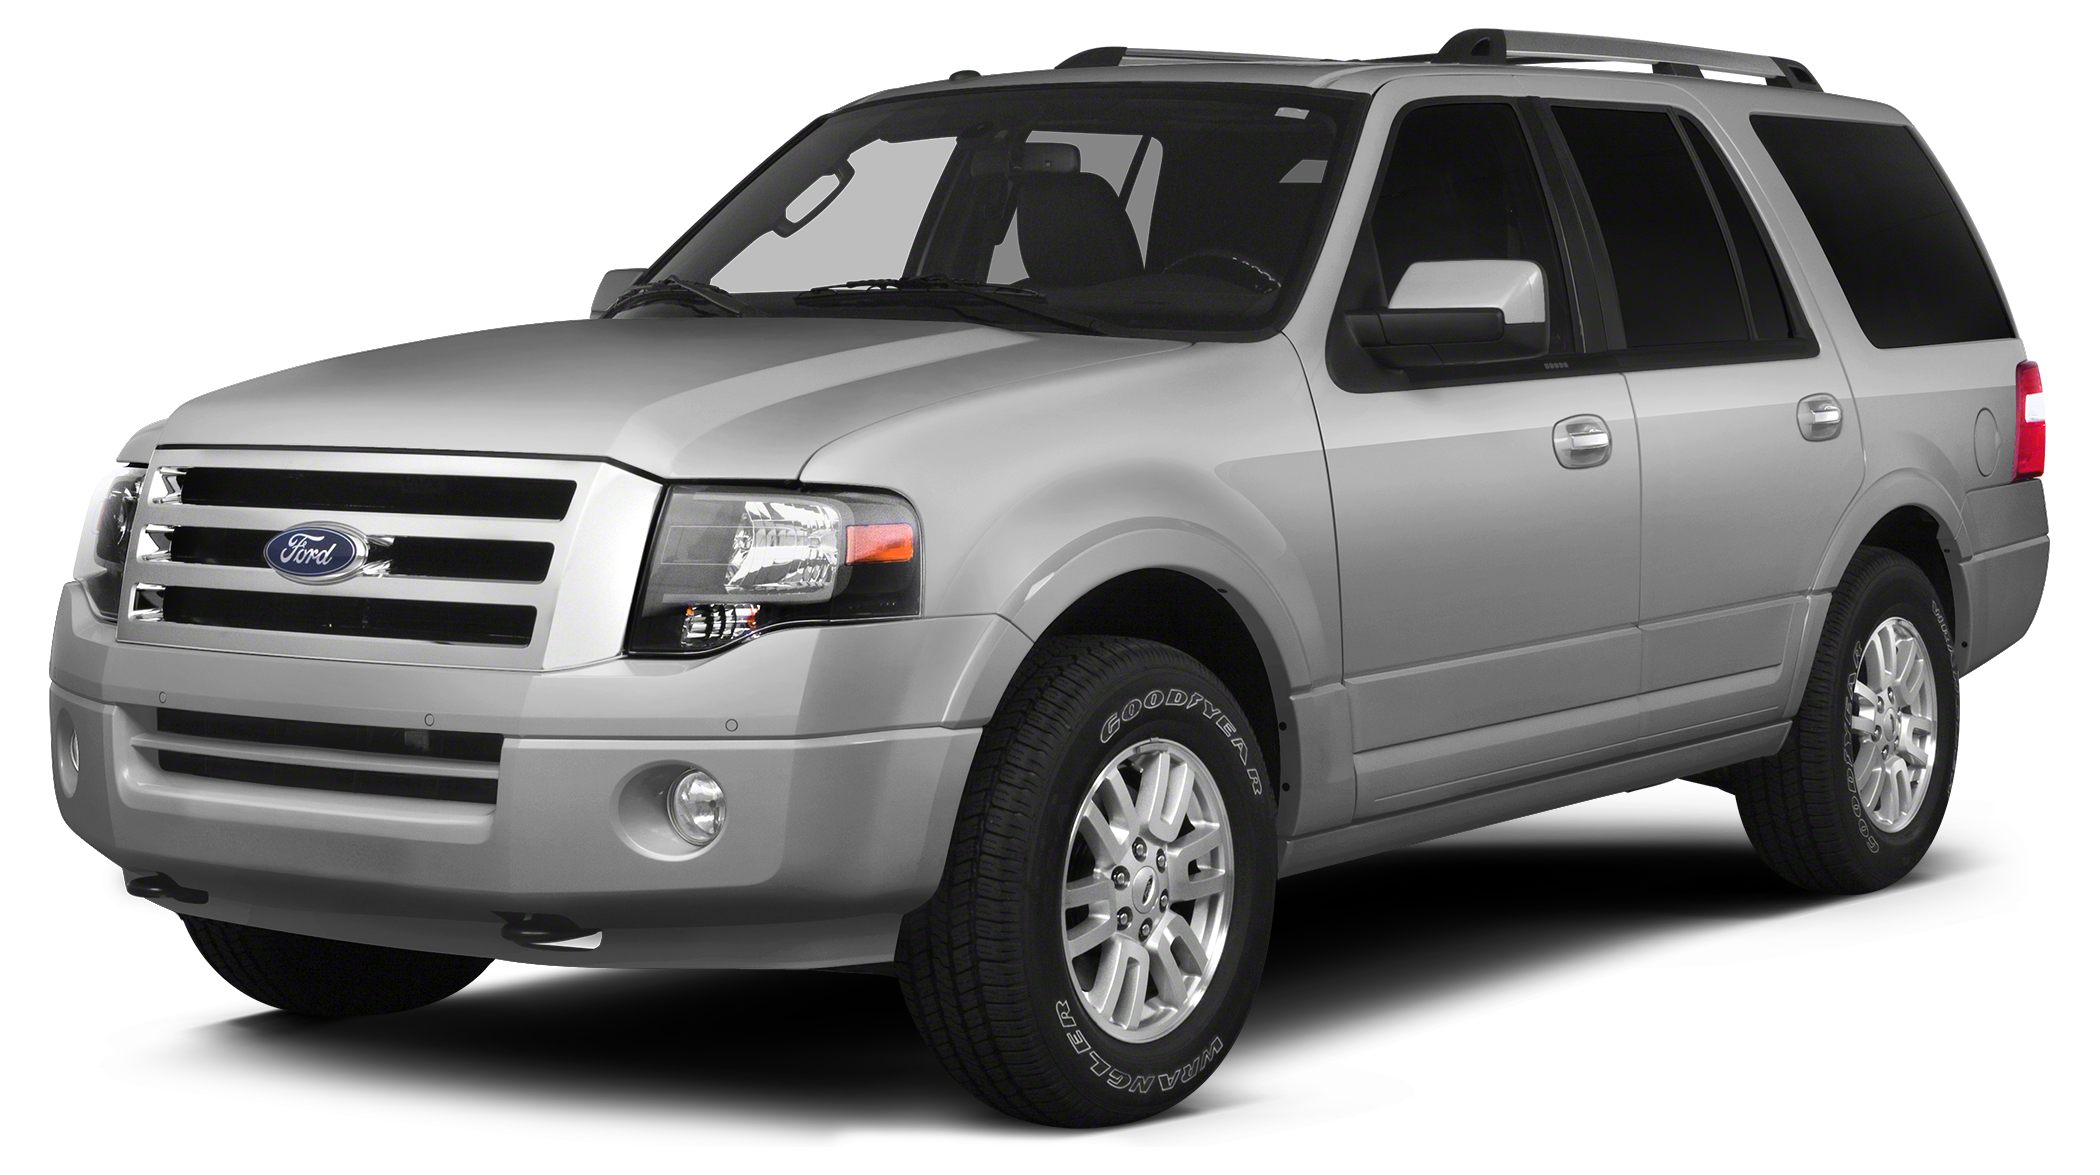 2014 Ford Expedition Limited Here at Lake Keowee Ford our customers come first and our prices will